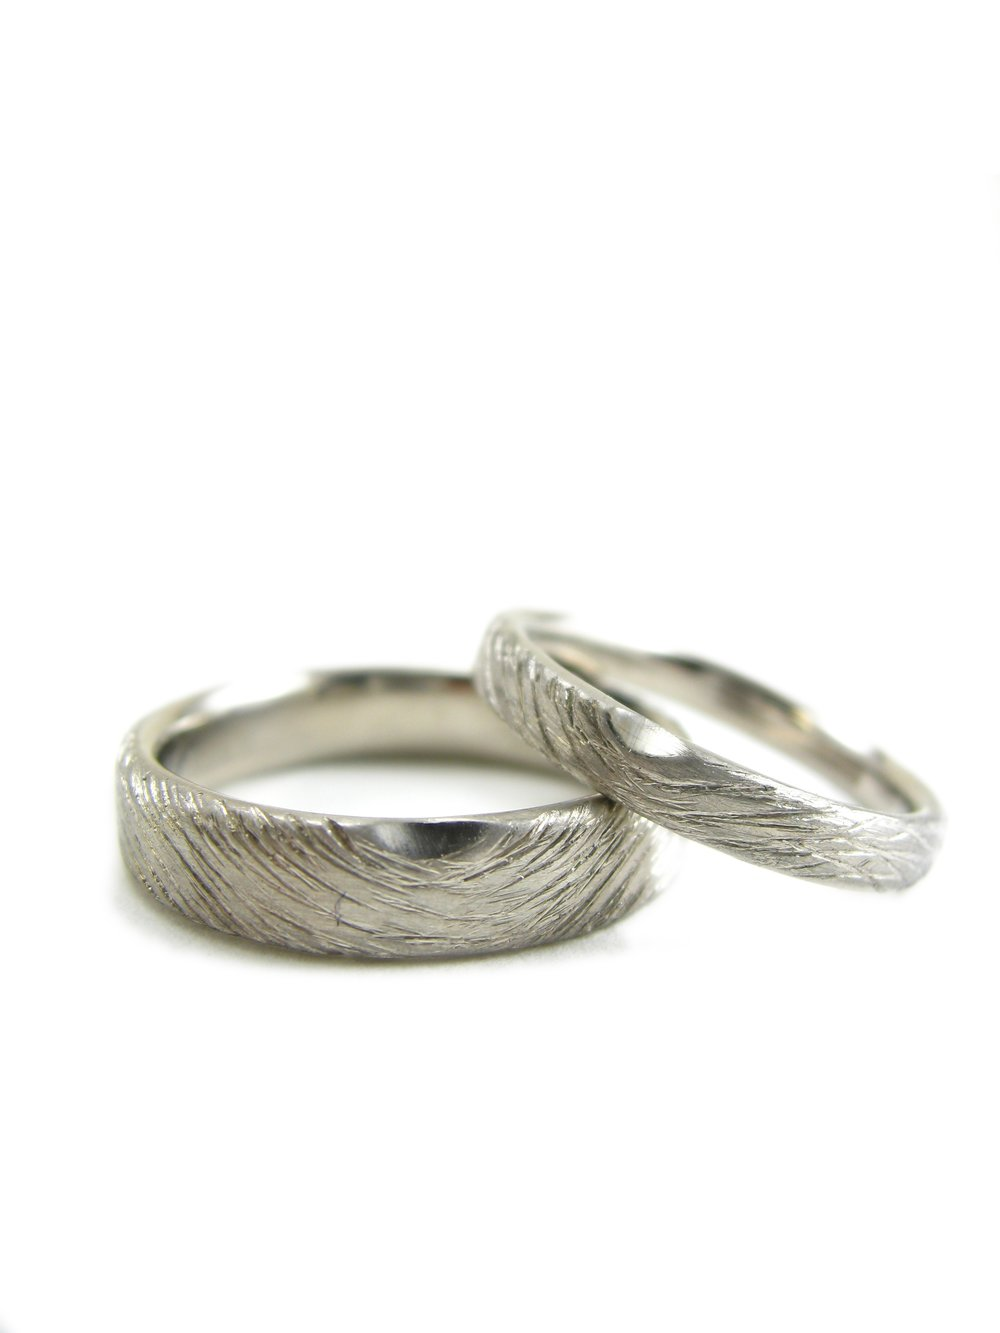 The finished rings. The bottom ring was created in a custom width. The top ring is available to order  here .